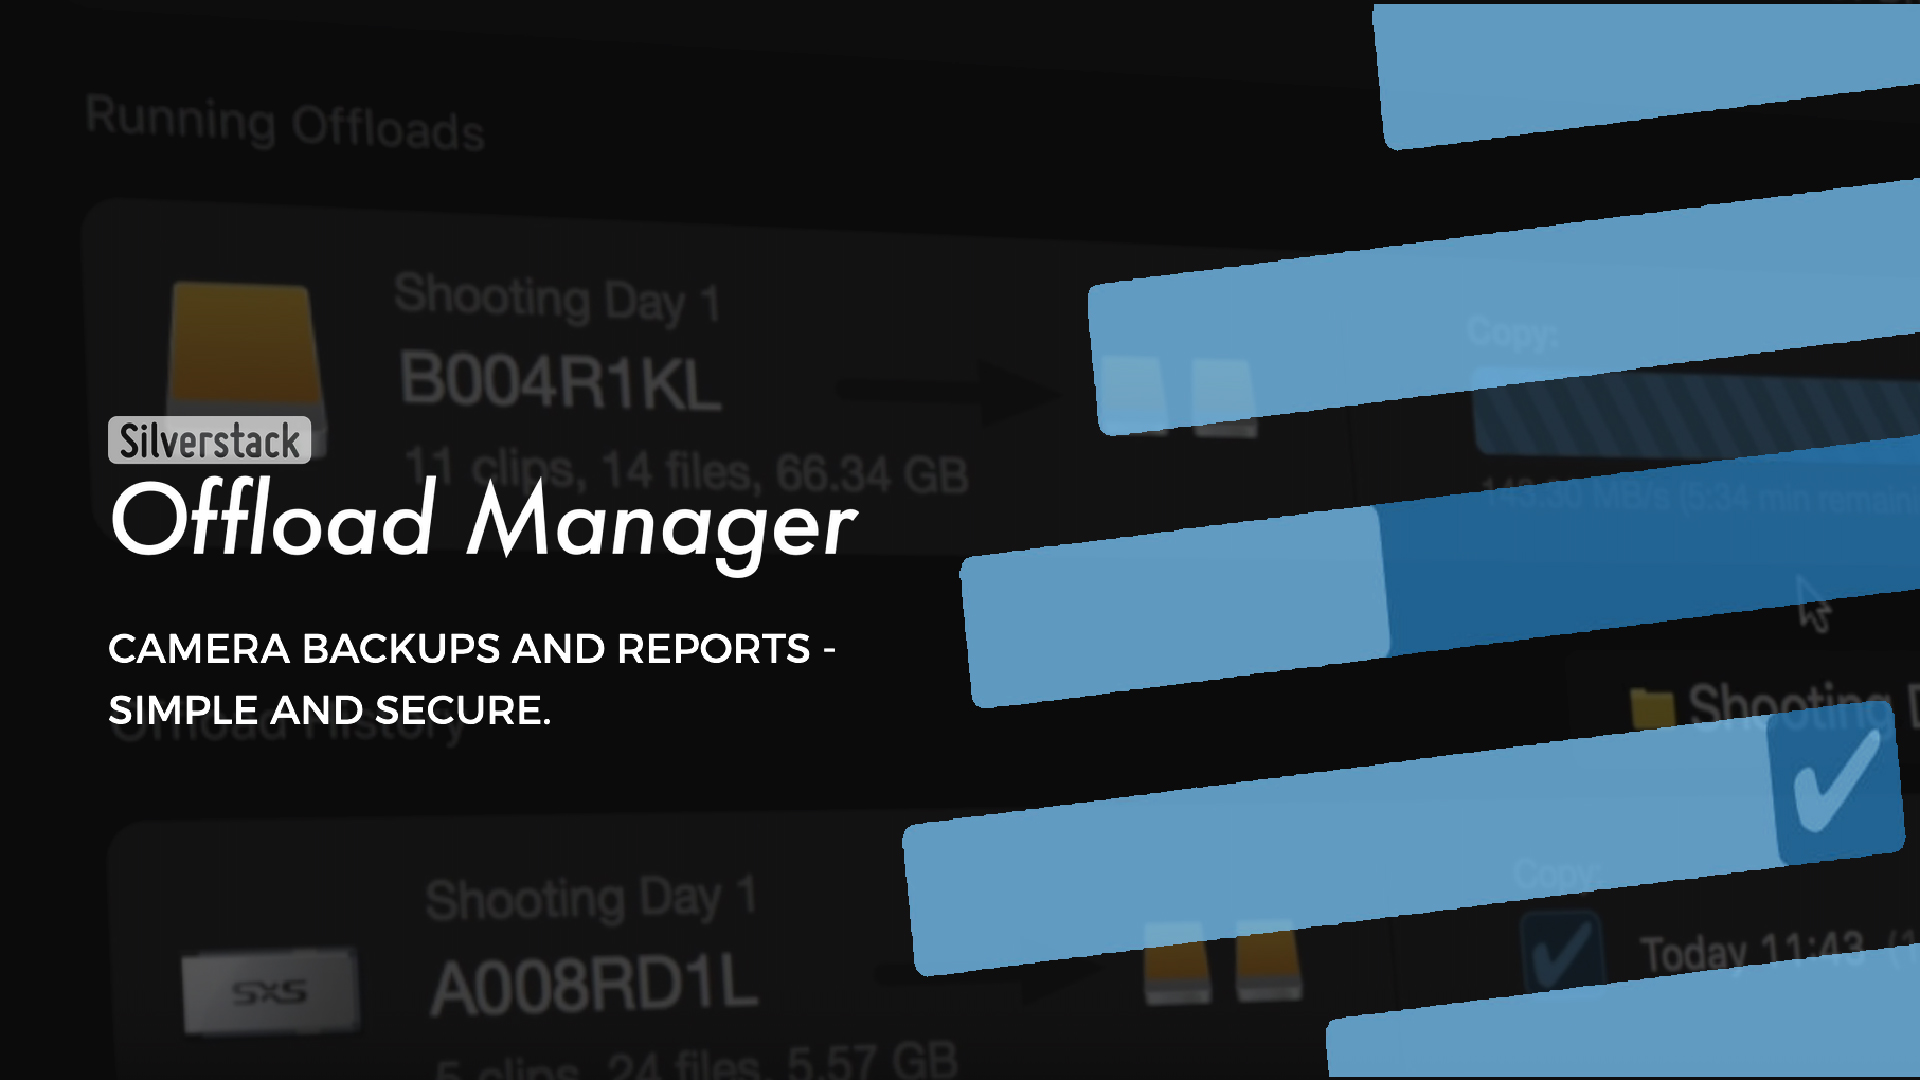 Offload Manager